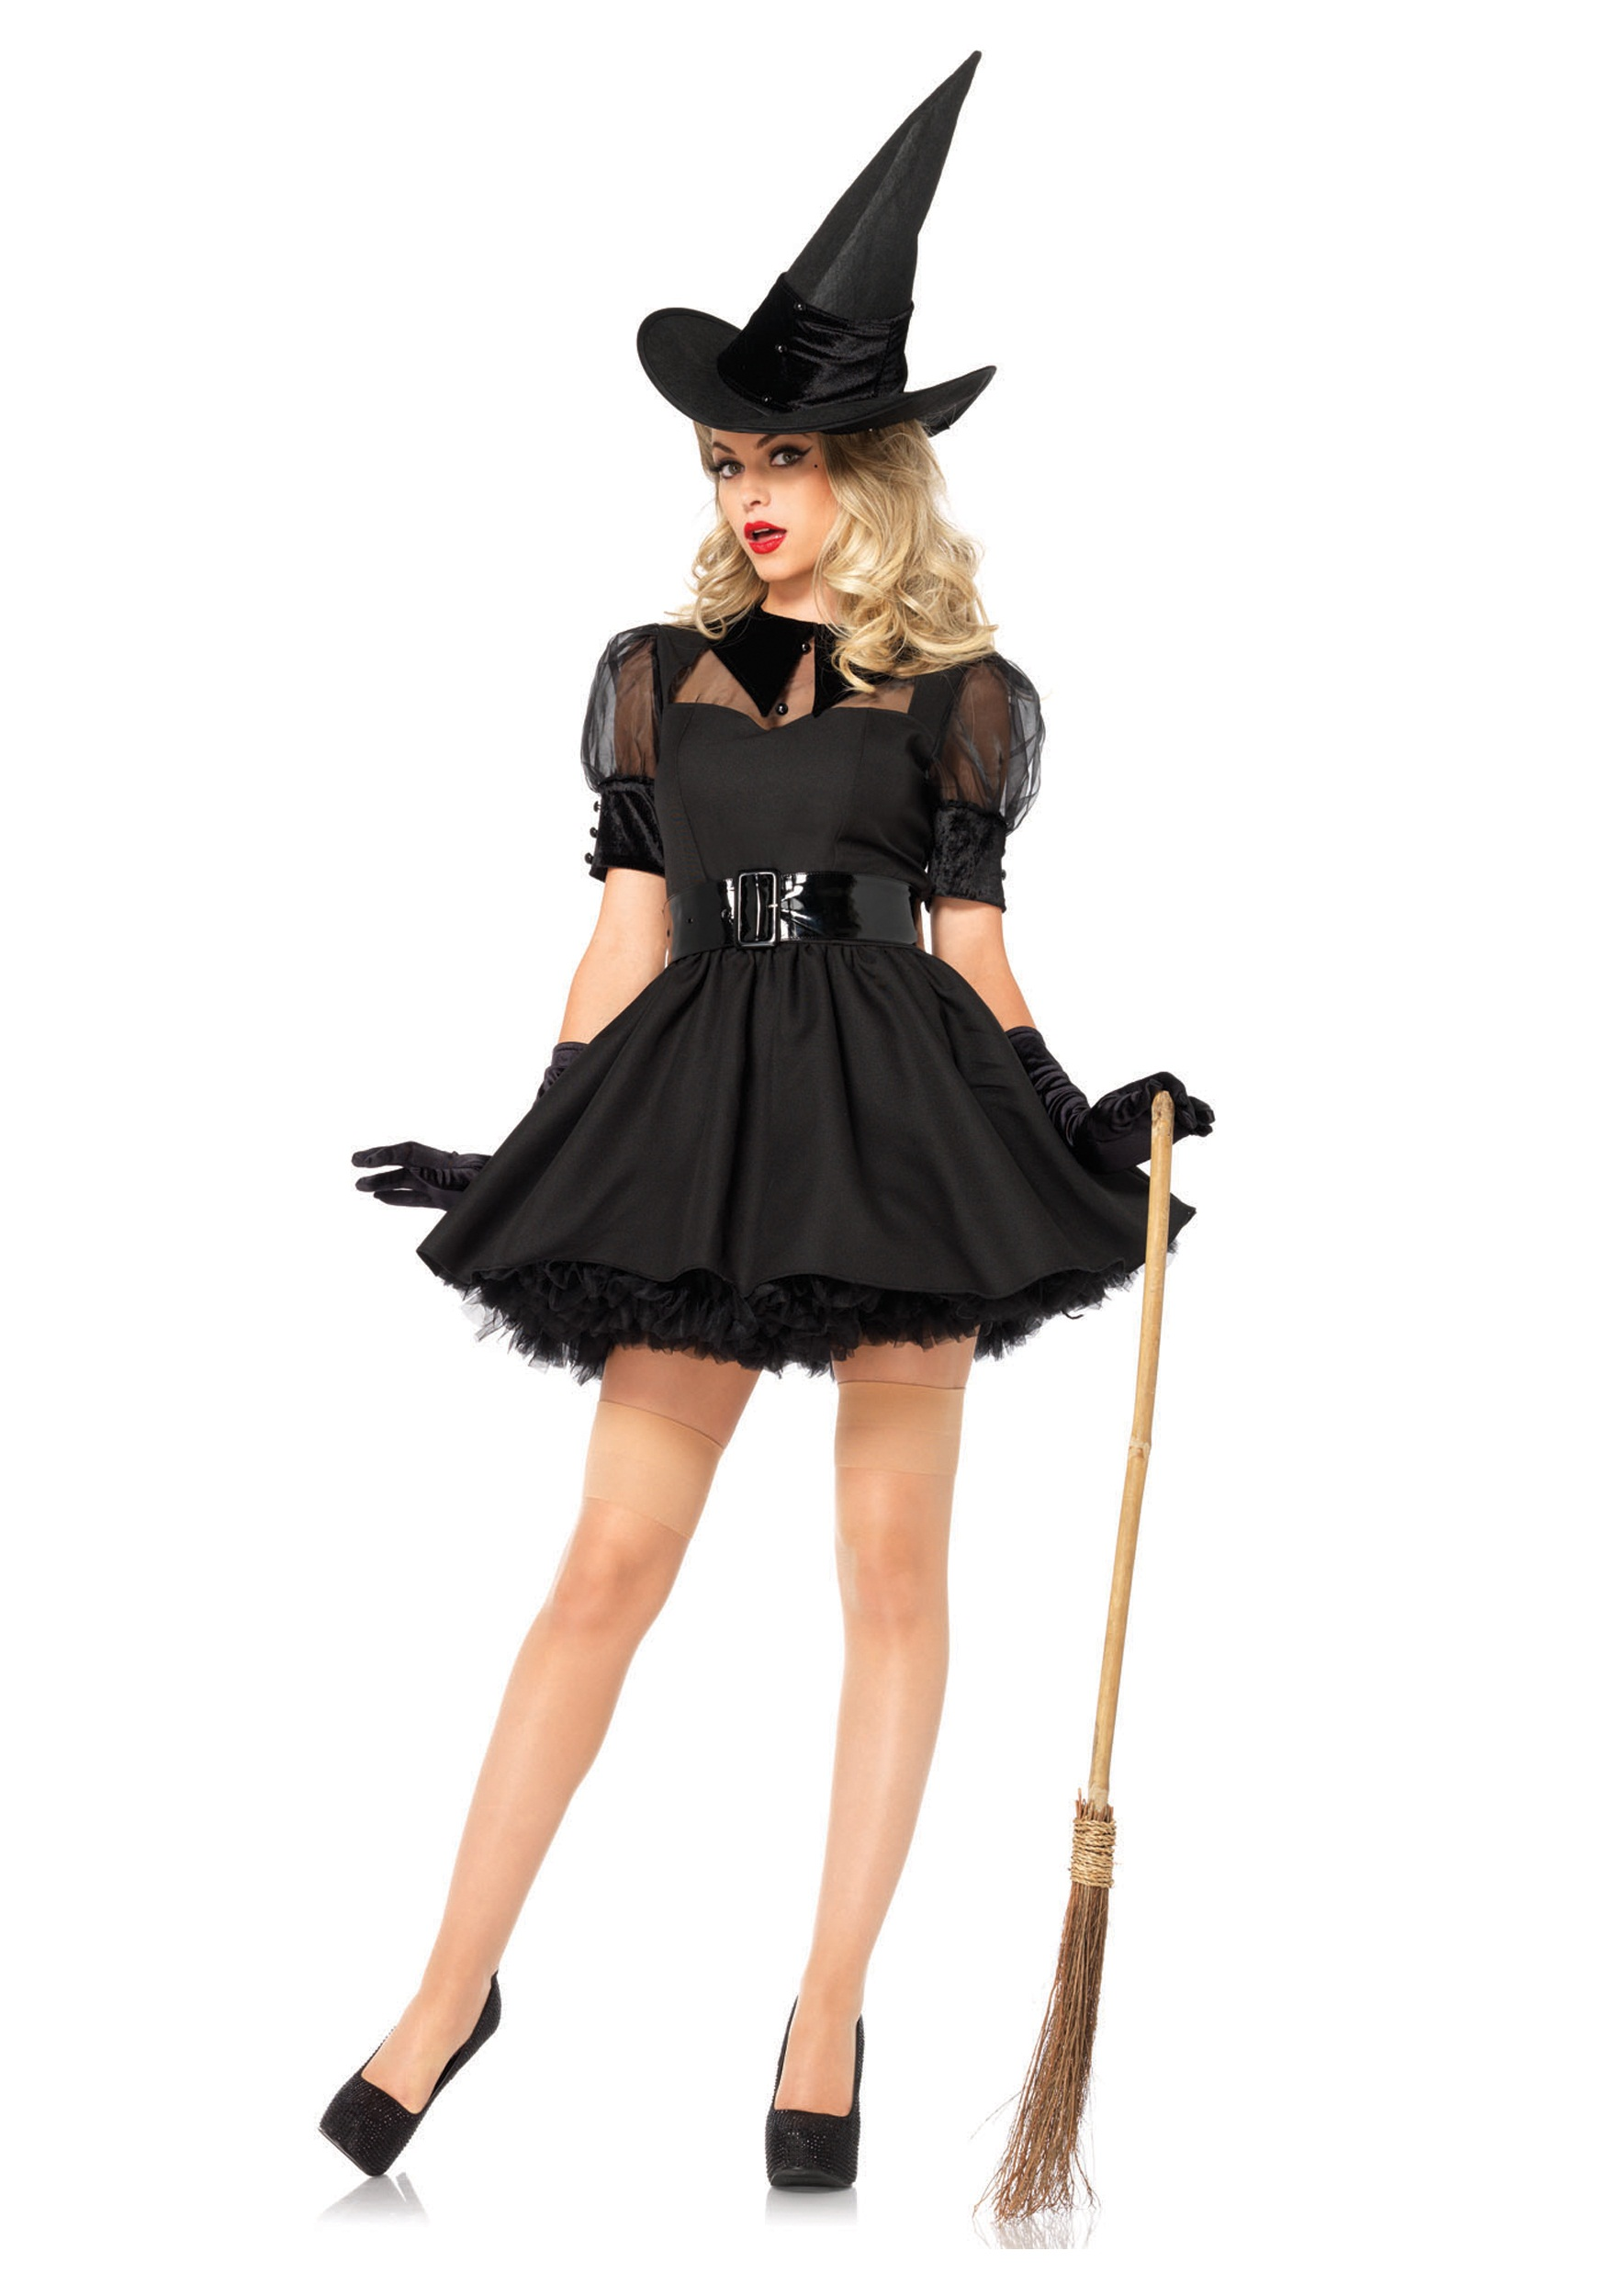 Plus Size Women's Costumes - Plus Size Halloween Costumes for Women